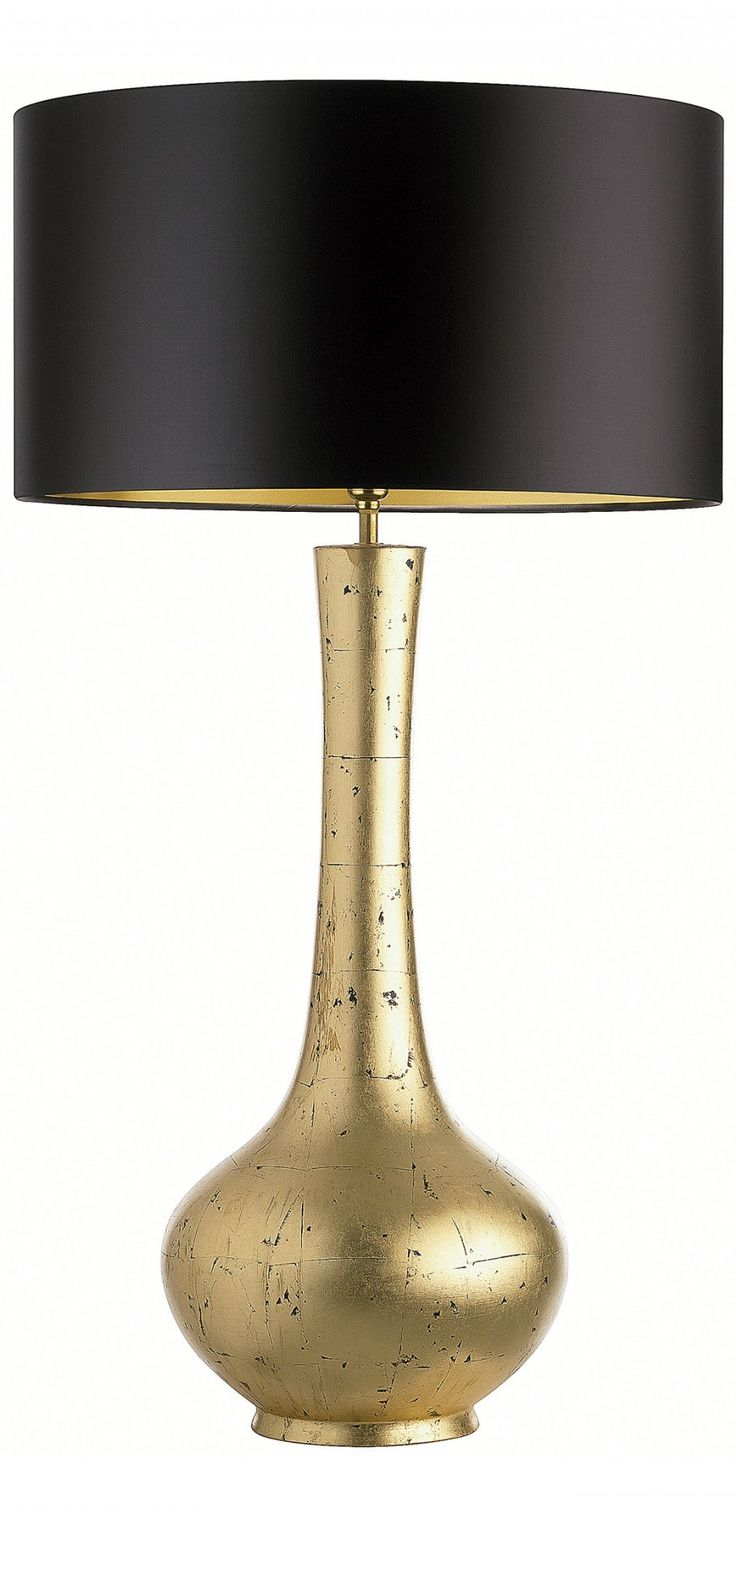 Gold gold table lamp table lamps modern table lamps contemporary table living room